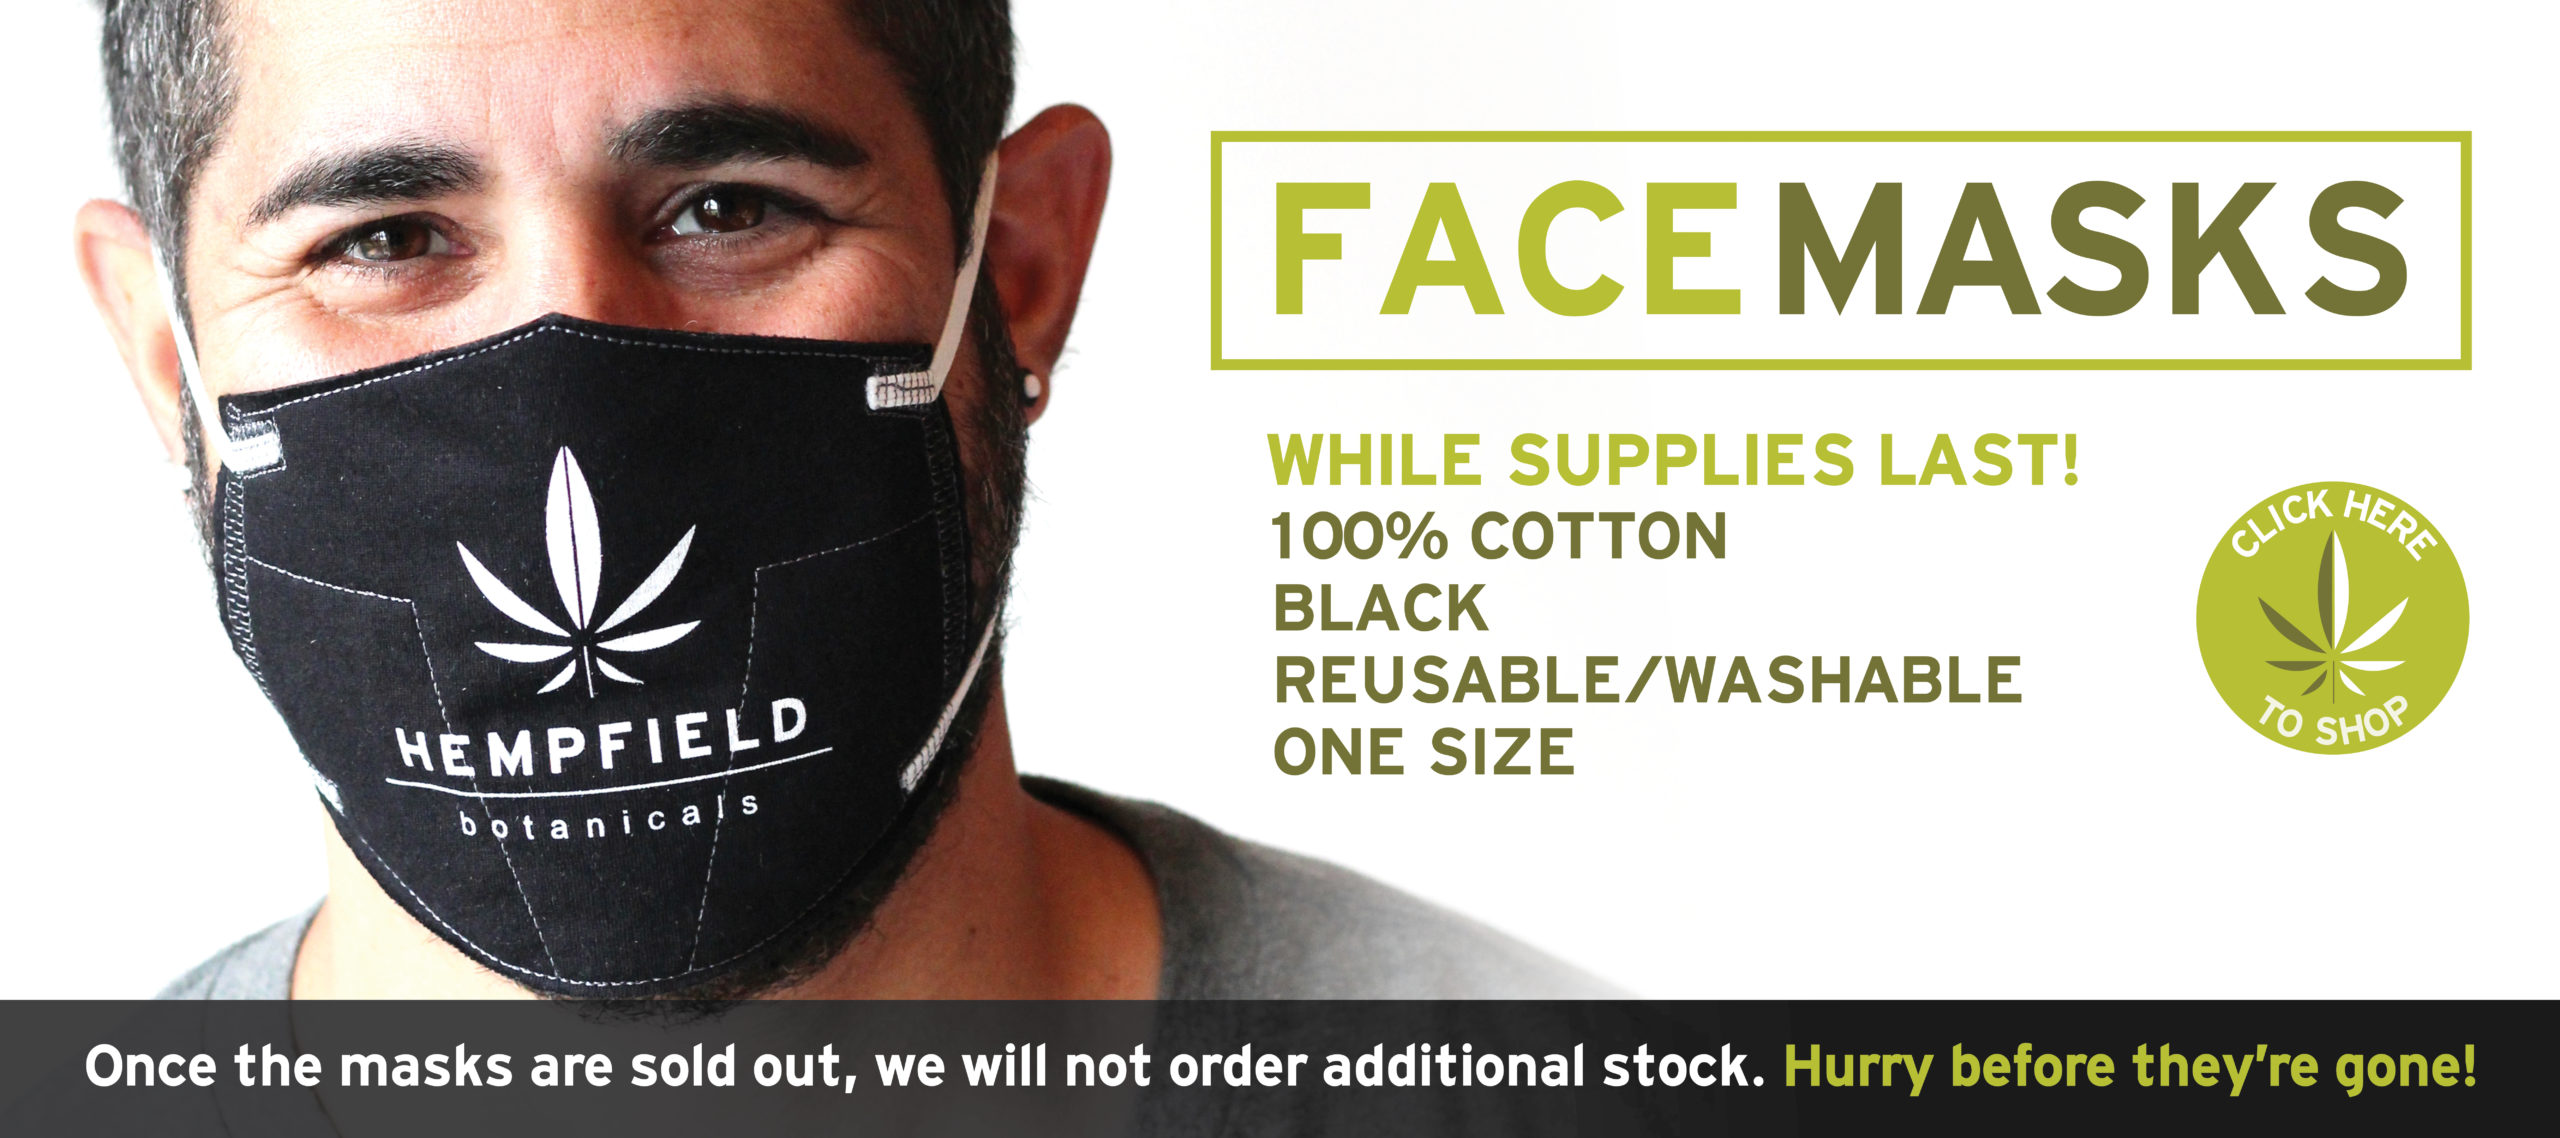 Hempfield Botanicals PPE Reusable Cotton Mask